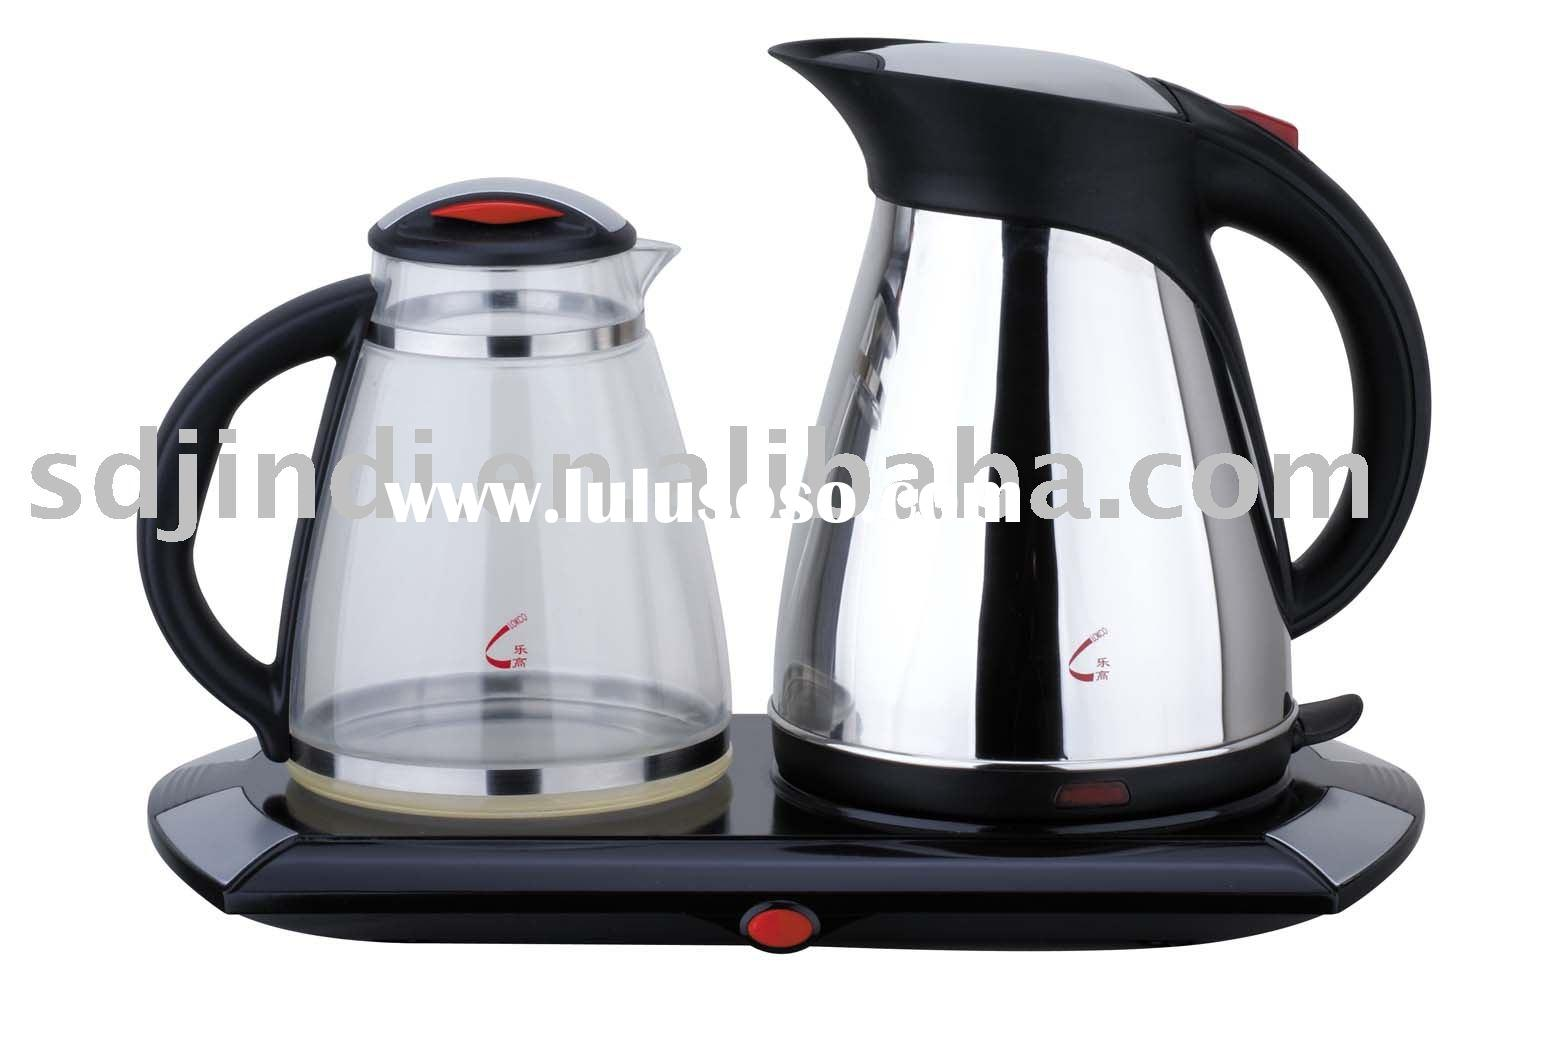 Electric Large capacity Stainless steel Tea Maker kettle set